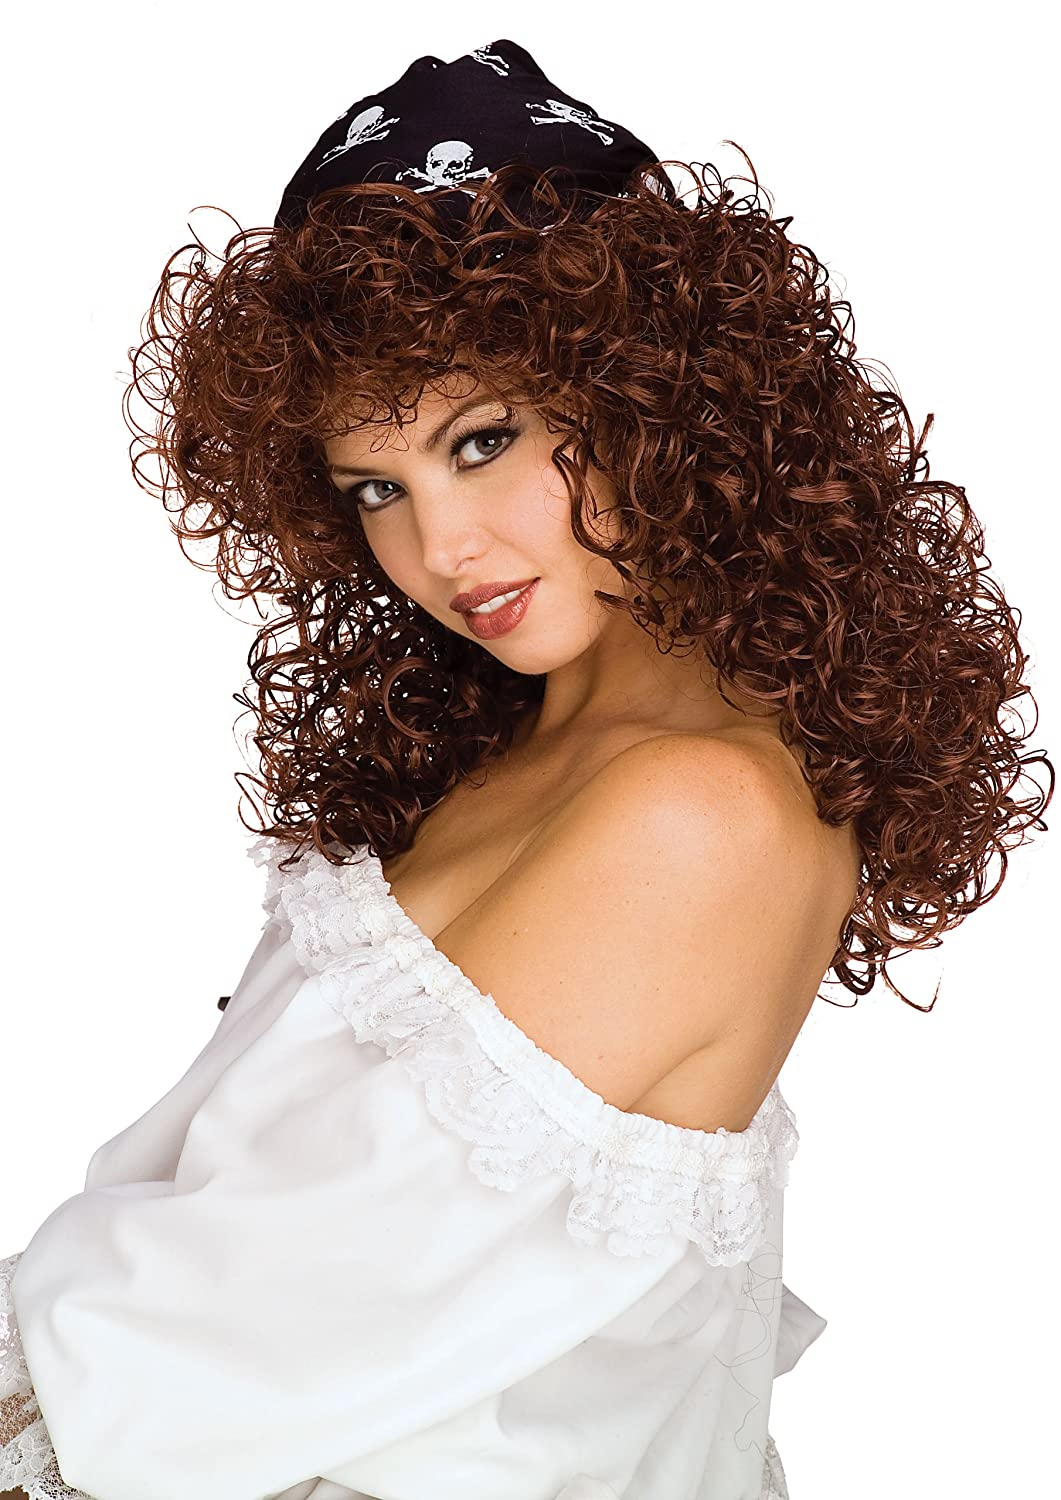 Rubies Costume Pirate Vixen Long Curly Wig Brown One Size Rubies Costume Co (Canada) 51453